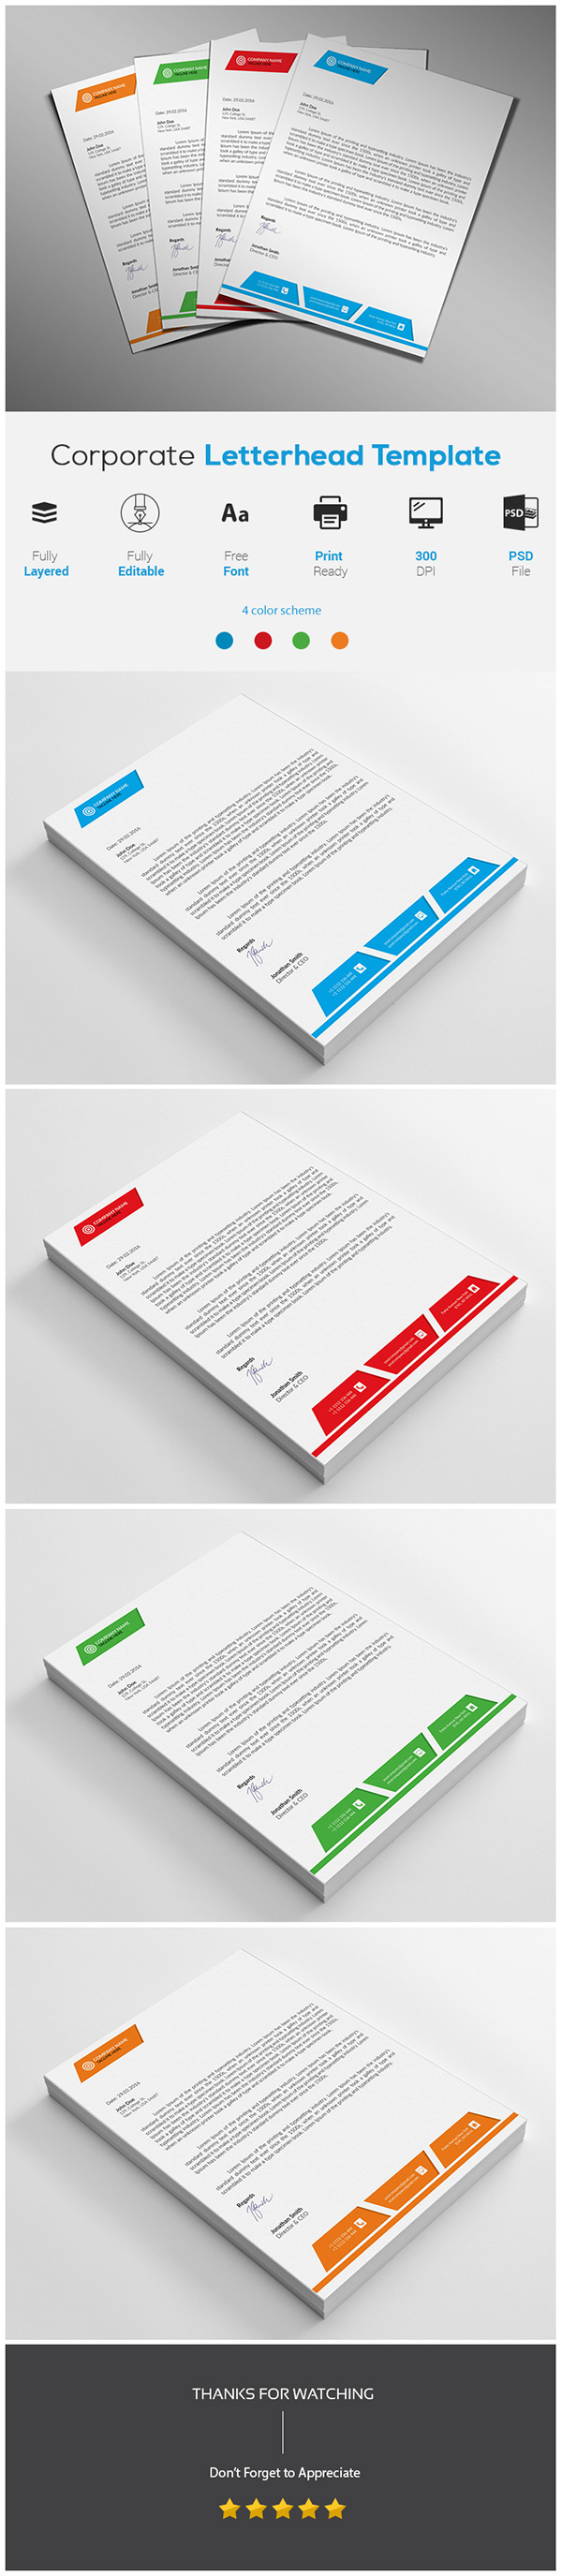 Corporate Mercial Letterhead Template On Student Show